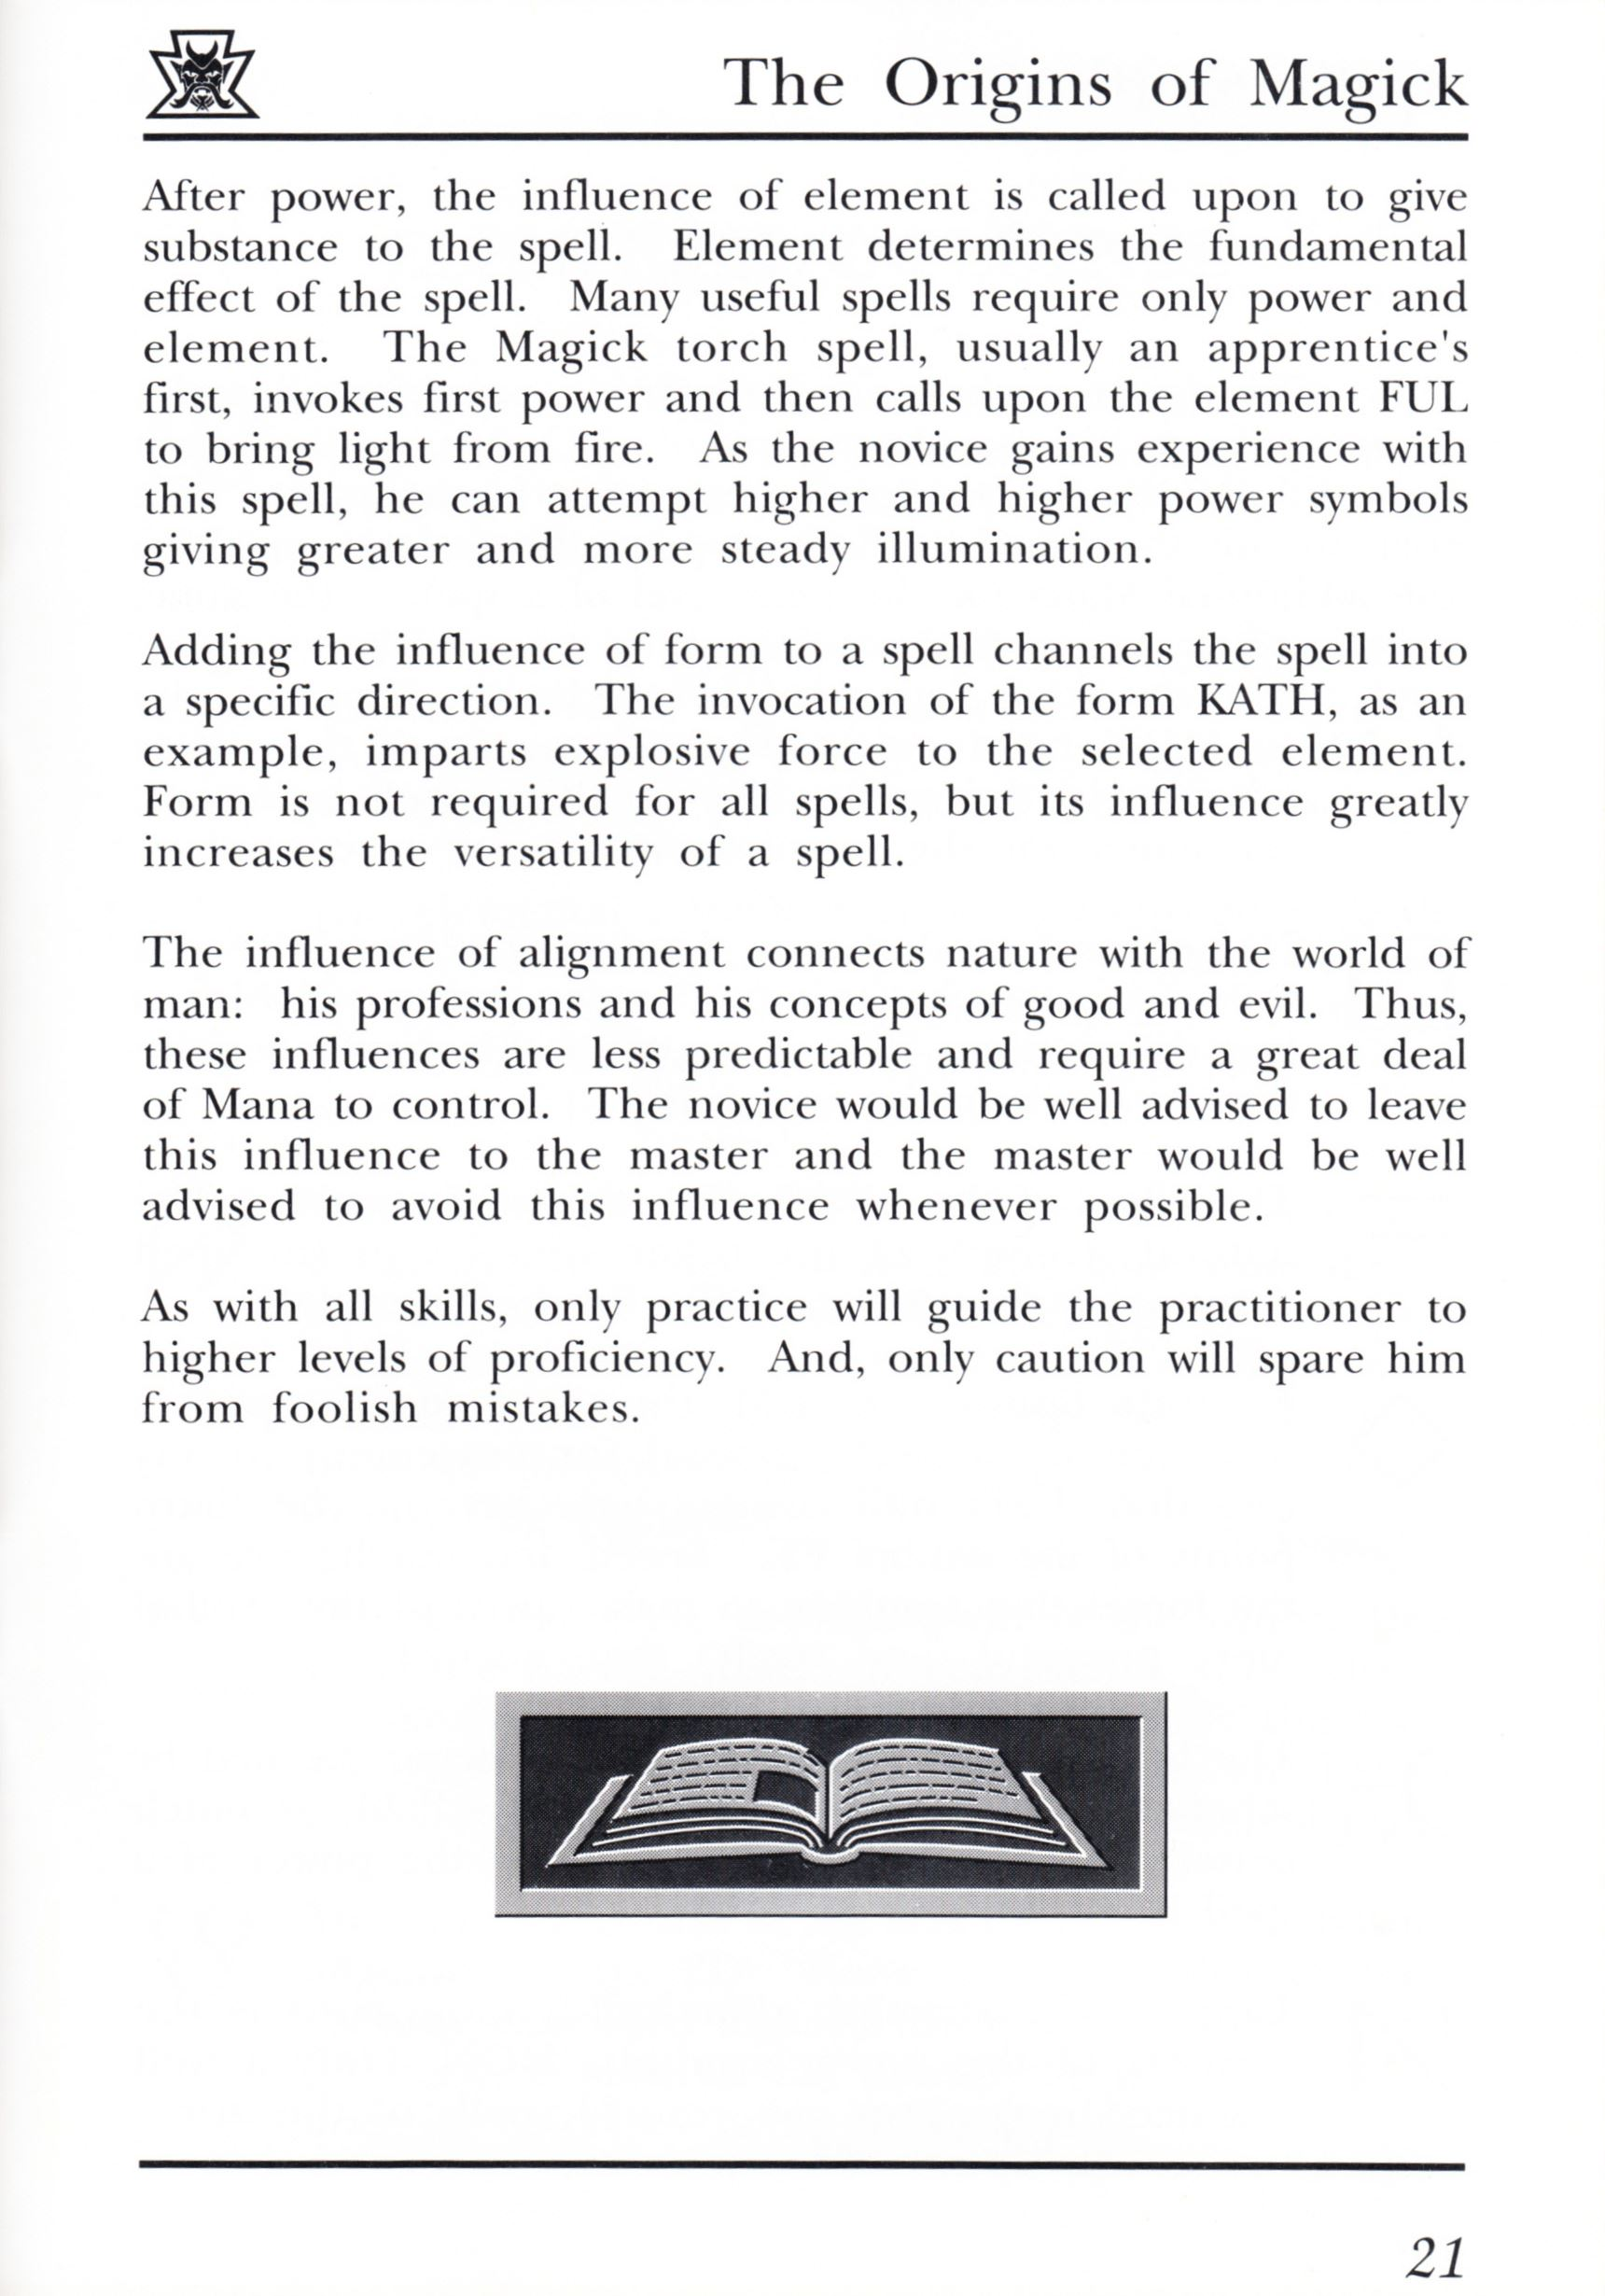 Game - Dungeon Master - UK - PC - Psygnosis - Manual - Page 041 - Scan